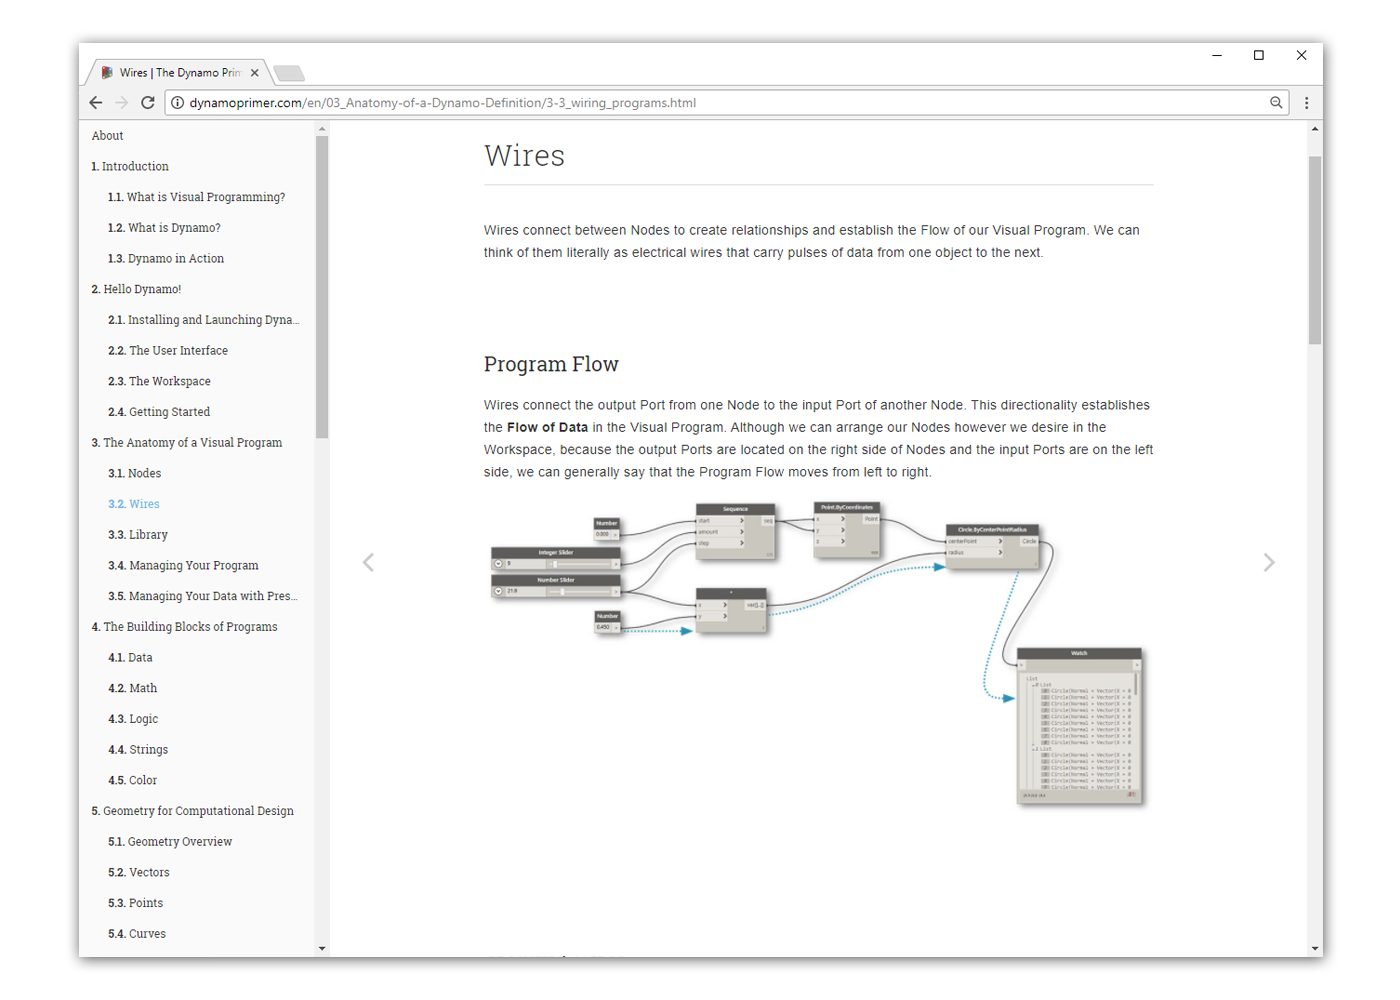 Dynamo Primer, 1st Ed. - An introduction to visual programming with Autodesk Dynamo.